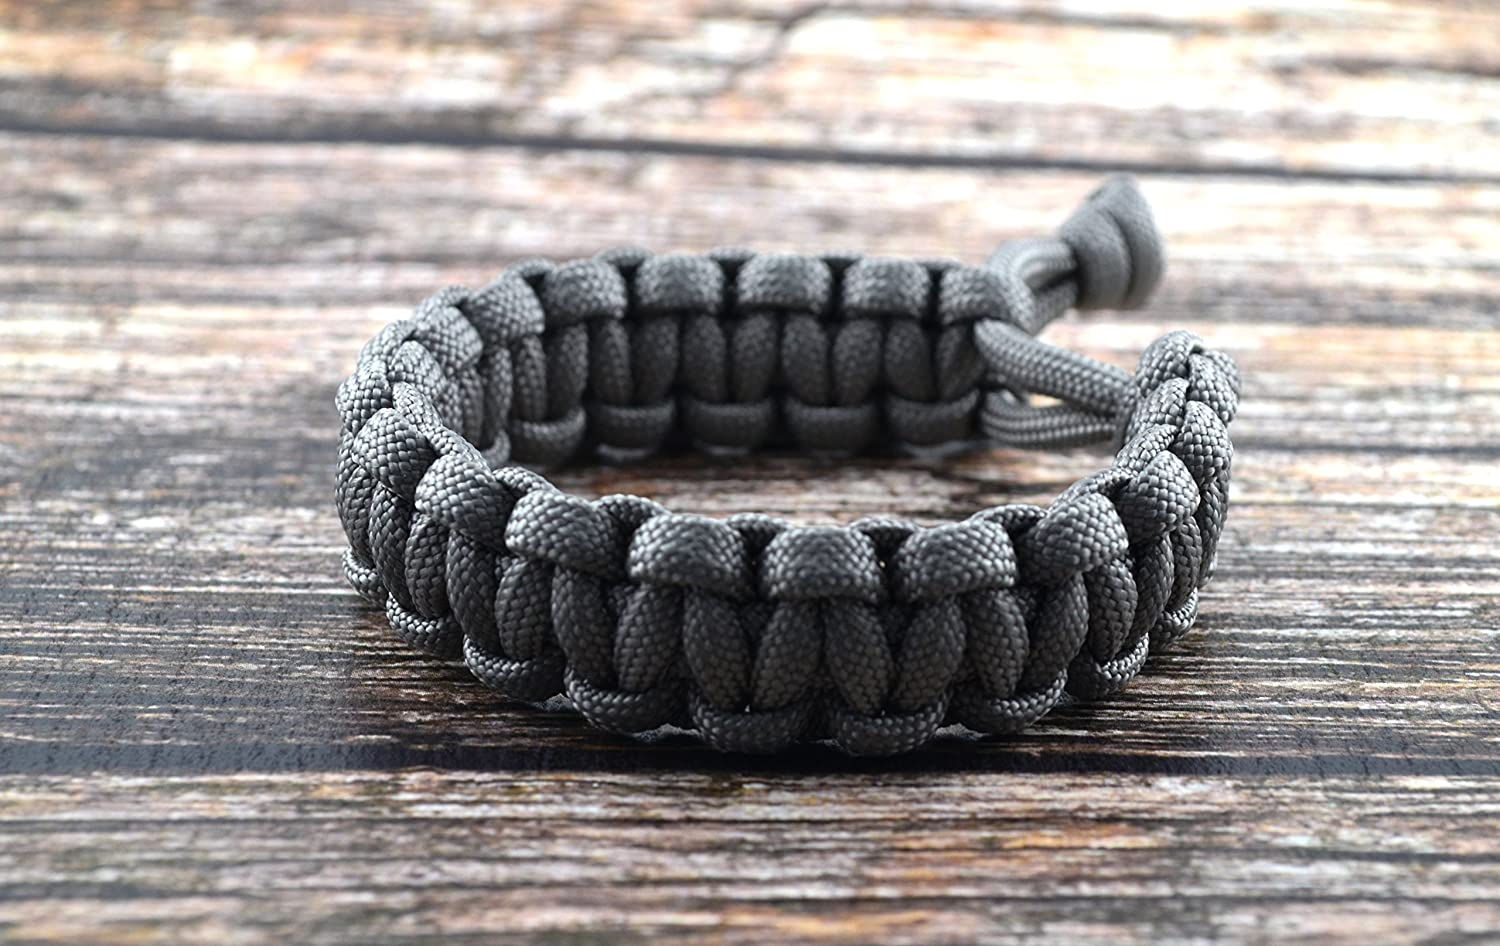 Mad Max Fury Road Tom Hardy Paracord Adjustable Survival Bracelet - Grey -  Size 8